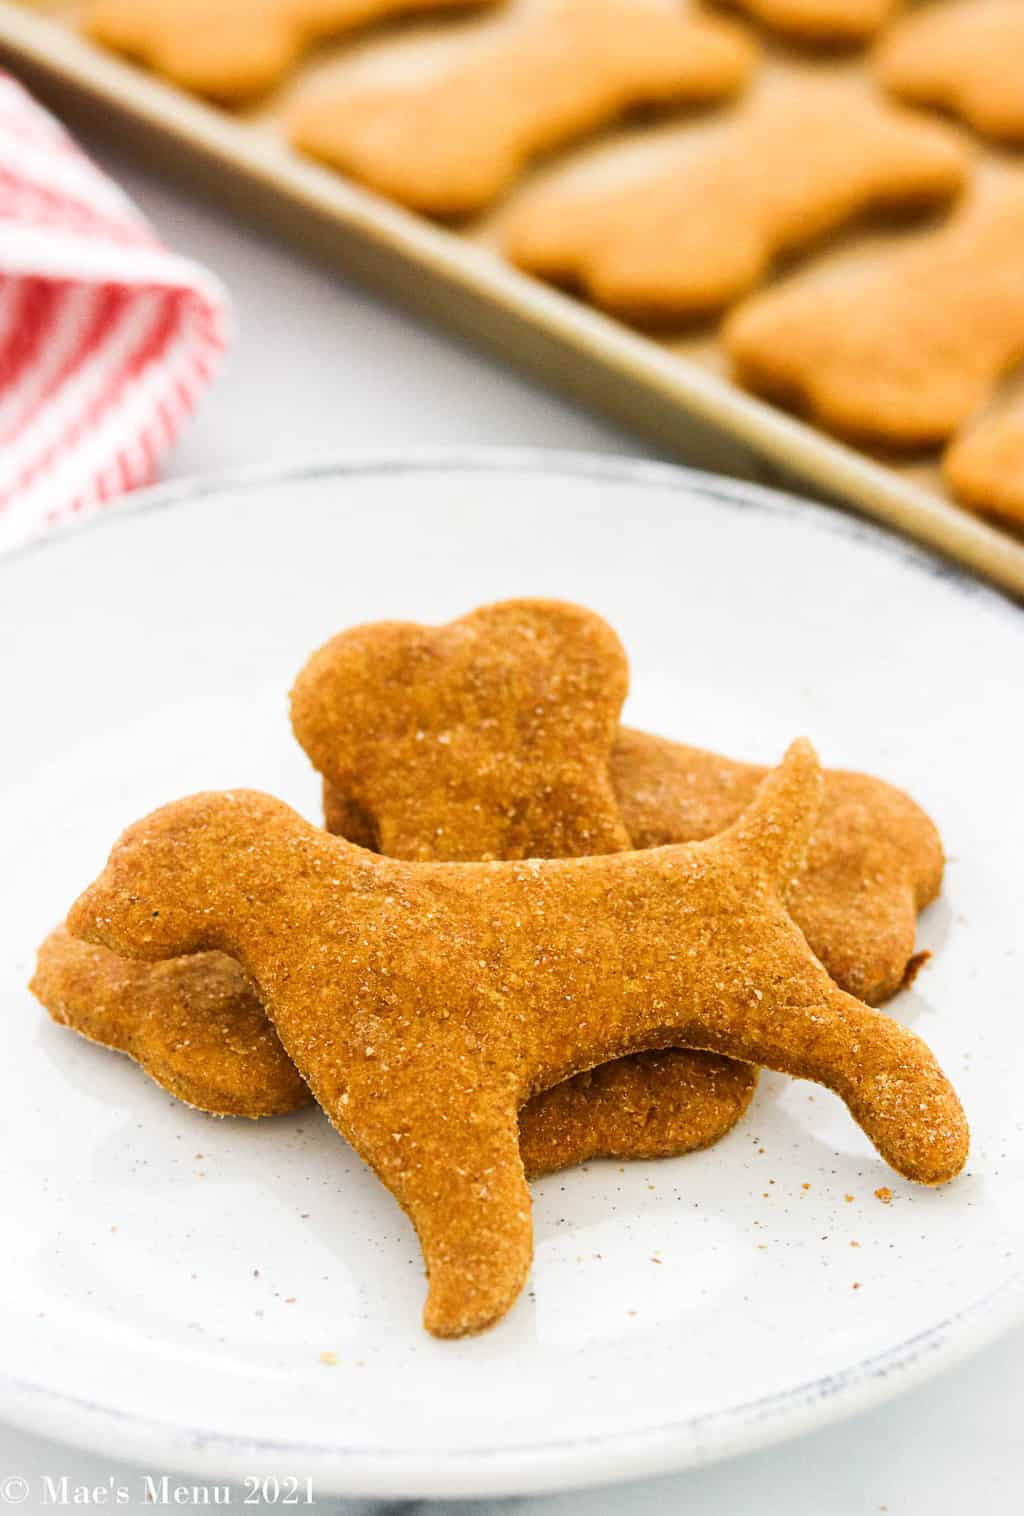 An up-close picture of peanut butter dog treats on a white plate with a tray of treats in the background